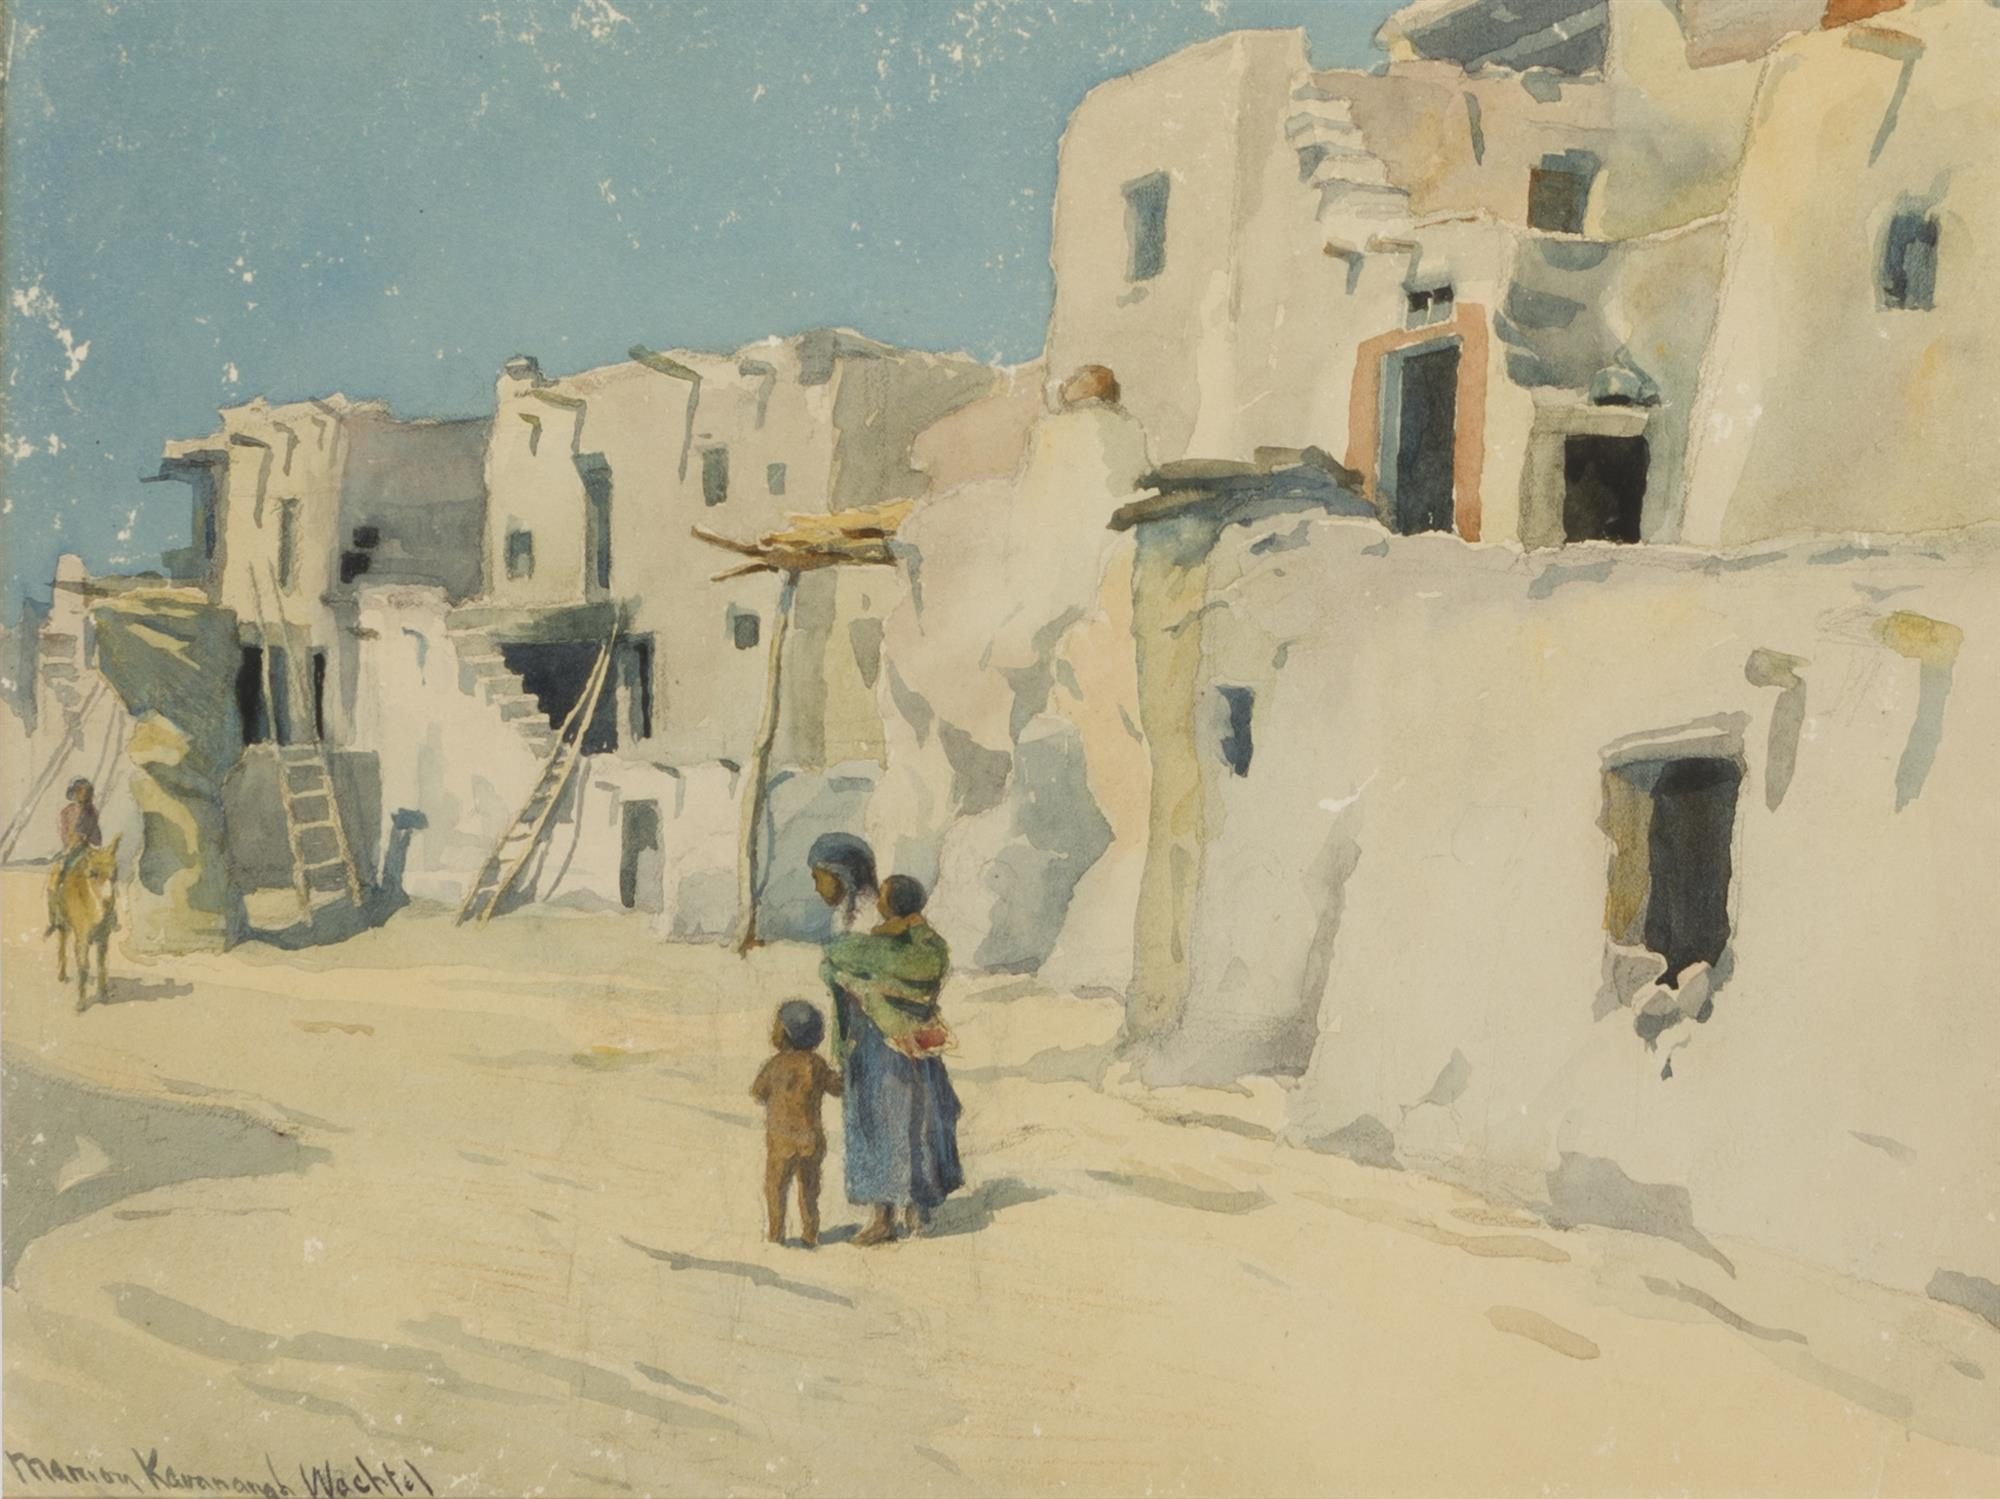 "Marion Kavanagh Wachtel, (1870-1954 Pasadena, CA), ""Street in Walpi"", Watercolor on paper under glass, Sight: 12"" H x 15.5"" W"